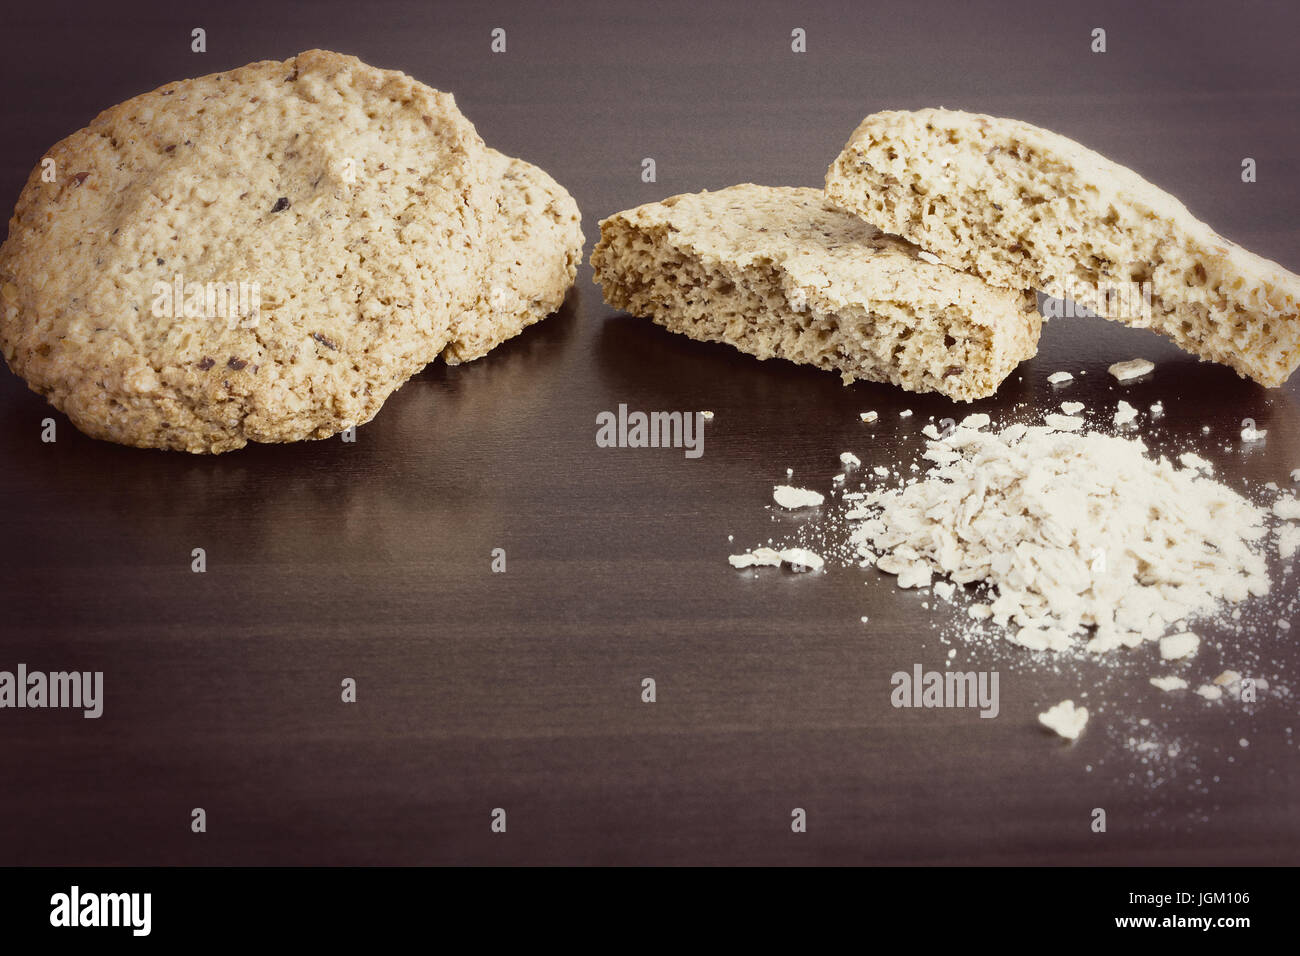 Homemade oatmeal cookie, healthy dessert, on dark background. Toned photo. Copy space. Selective focus - Stock Image